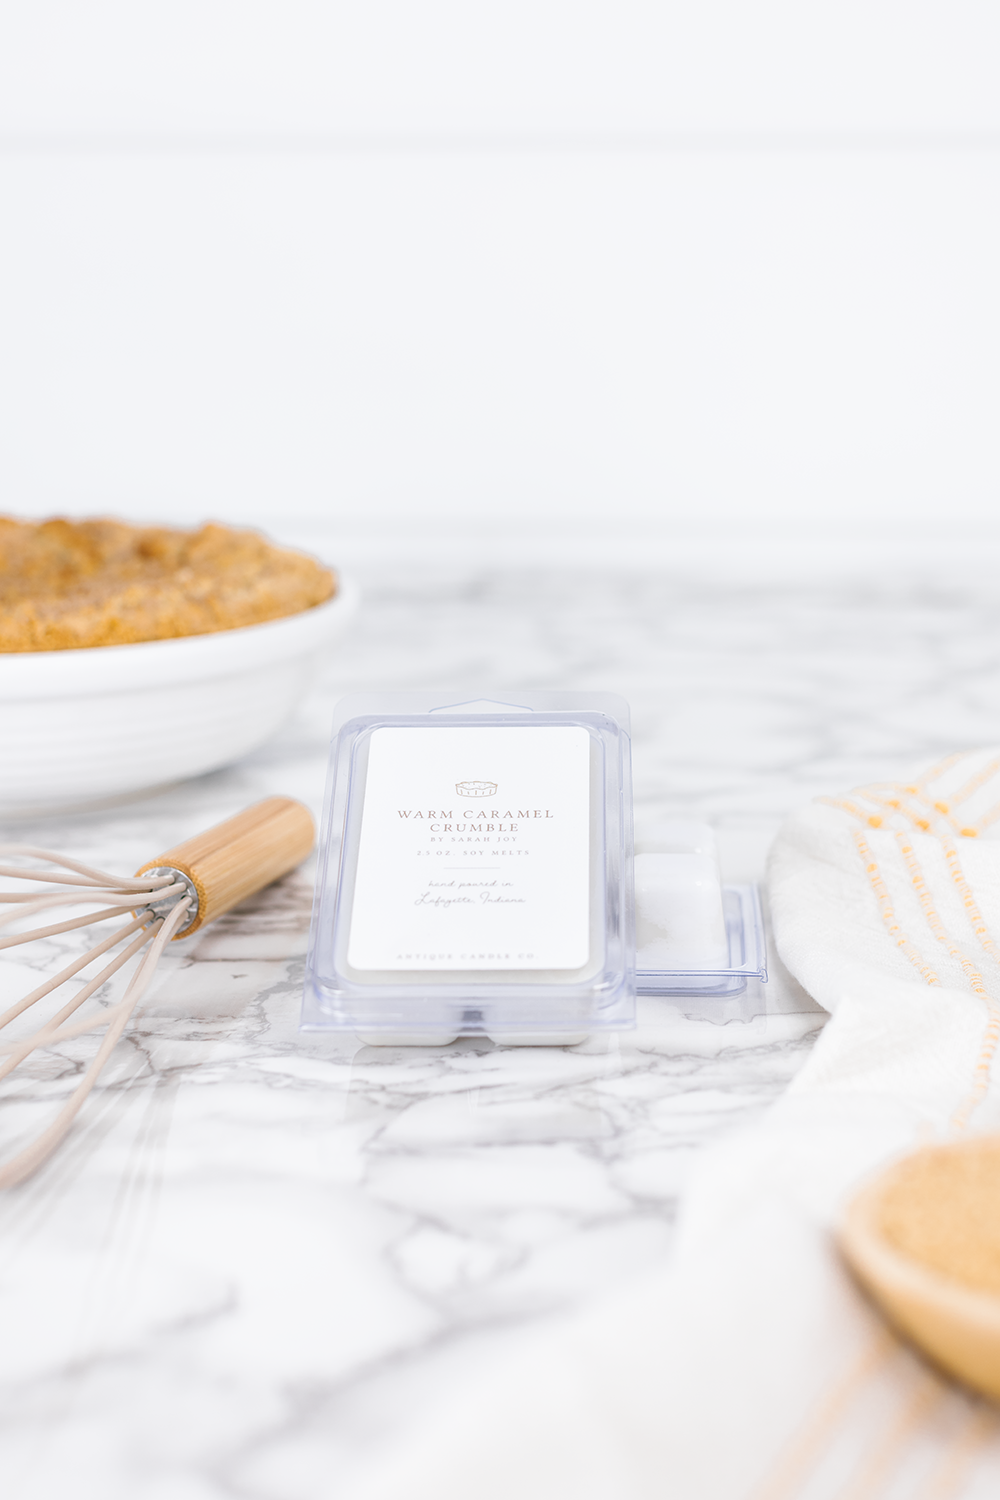 The Yummiest Fall Candle is HERE! Warm Caramel Crumble by Sarah Joy is the most delicious smelling fall candle!